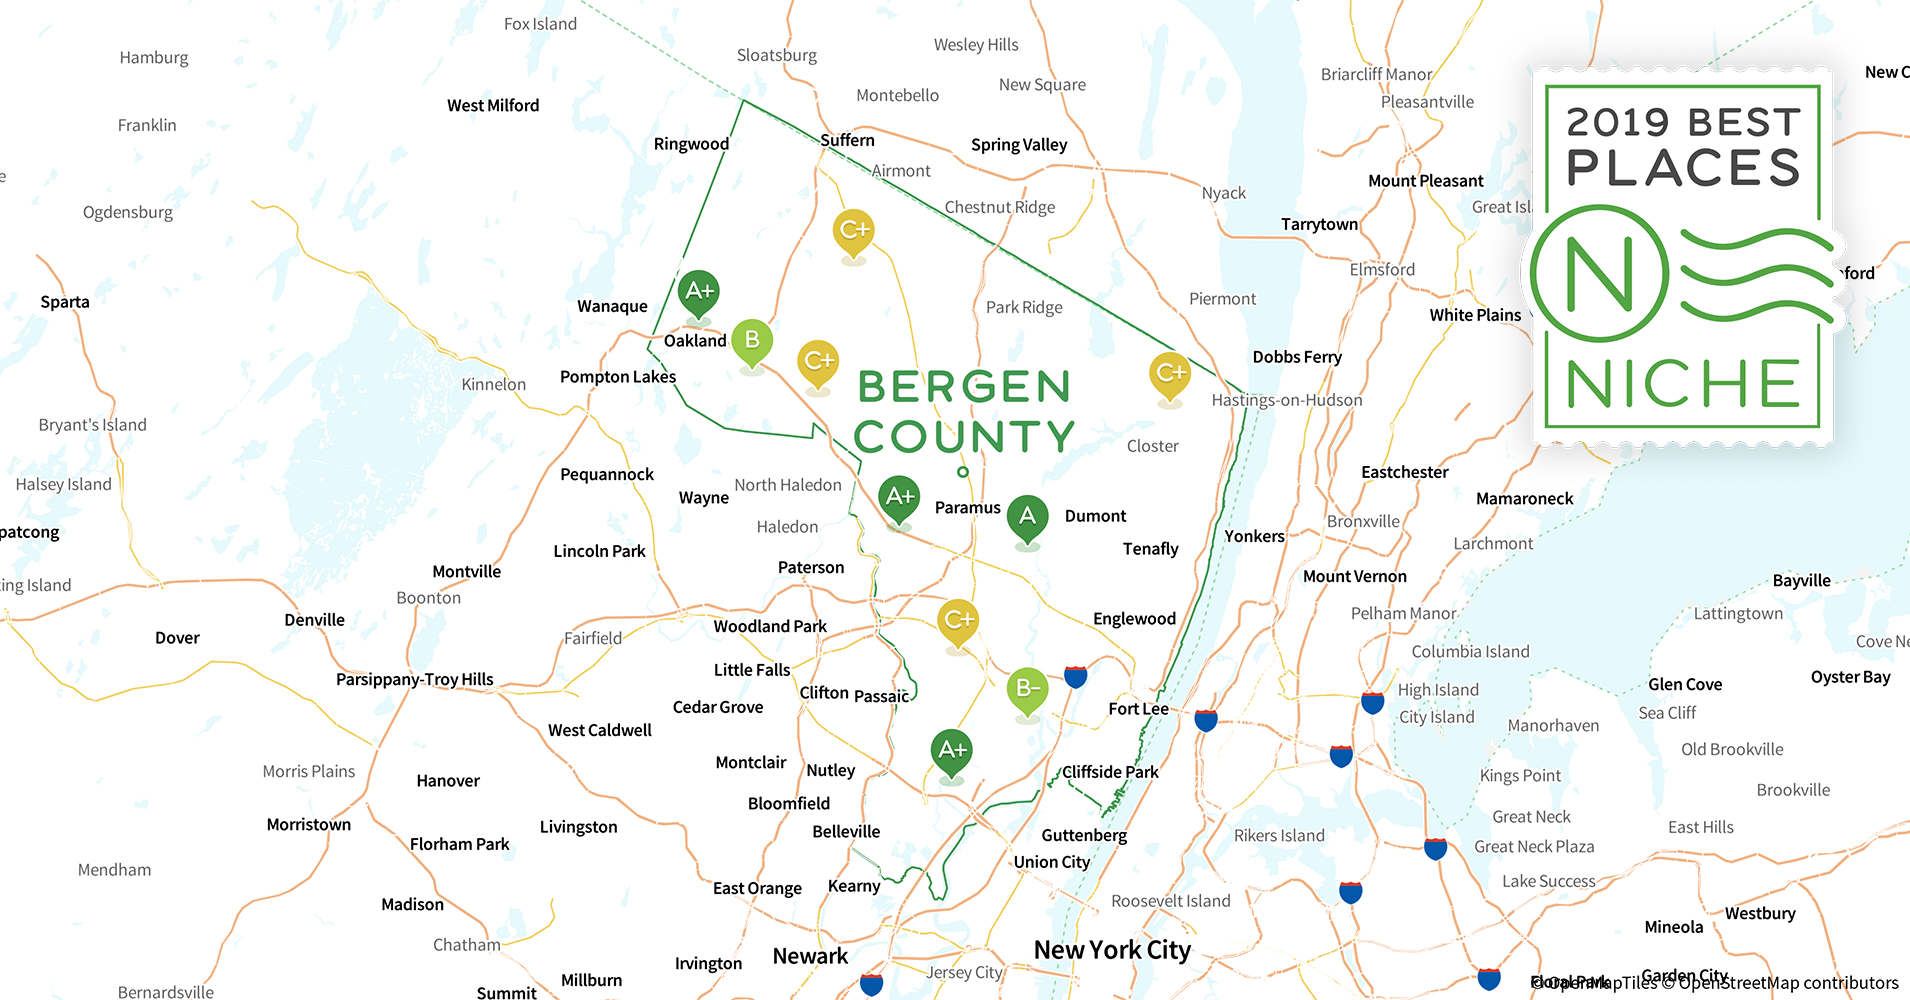 2019 Best Places to Live in Bergen County, NJ - Niche